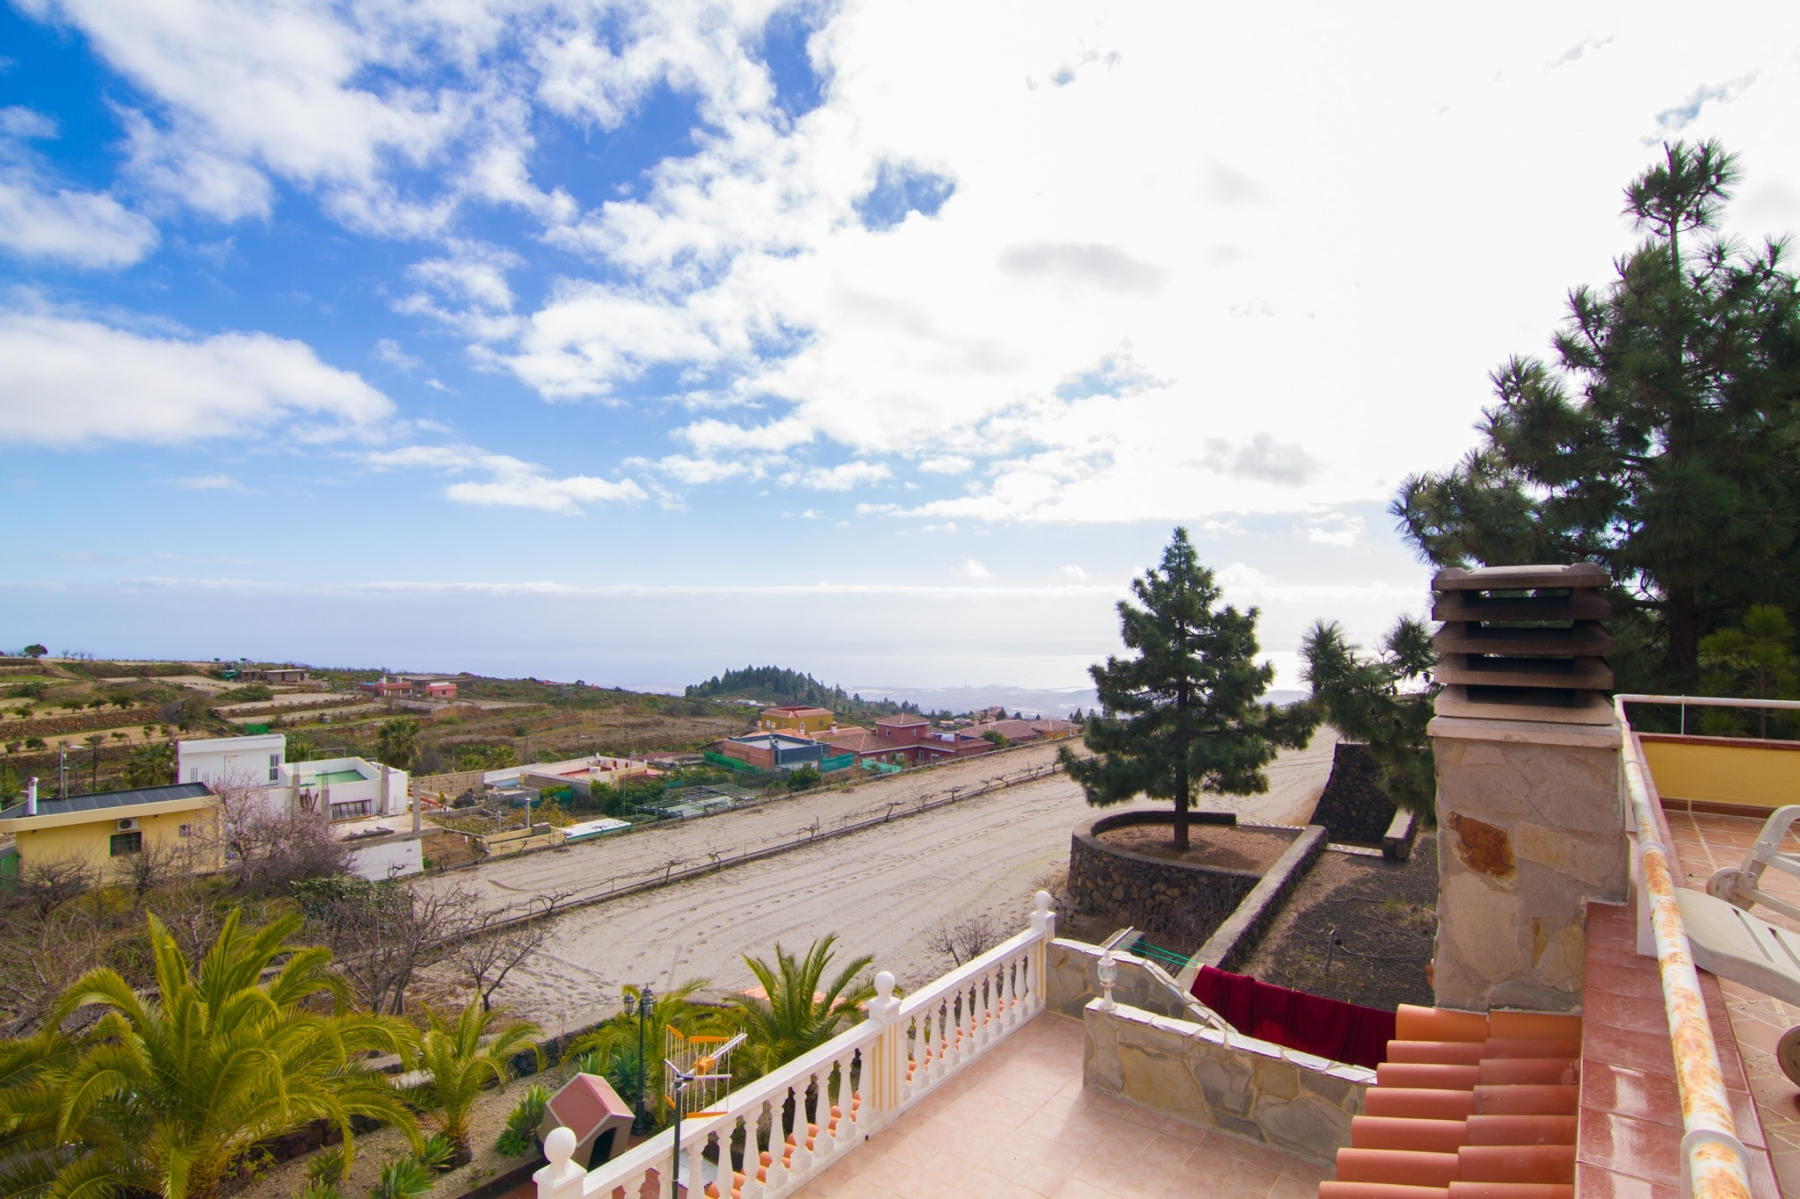 Properties for Sale in Tenerife, Canary Islands, Spain | SylkWayStar Real Estate. Finca with vineyard - Cruz de Tea - Granadilla de Abona . Image-21864